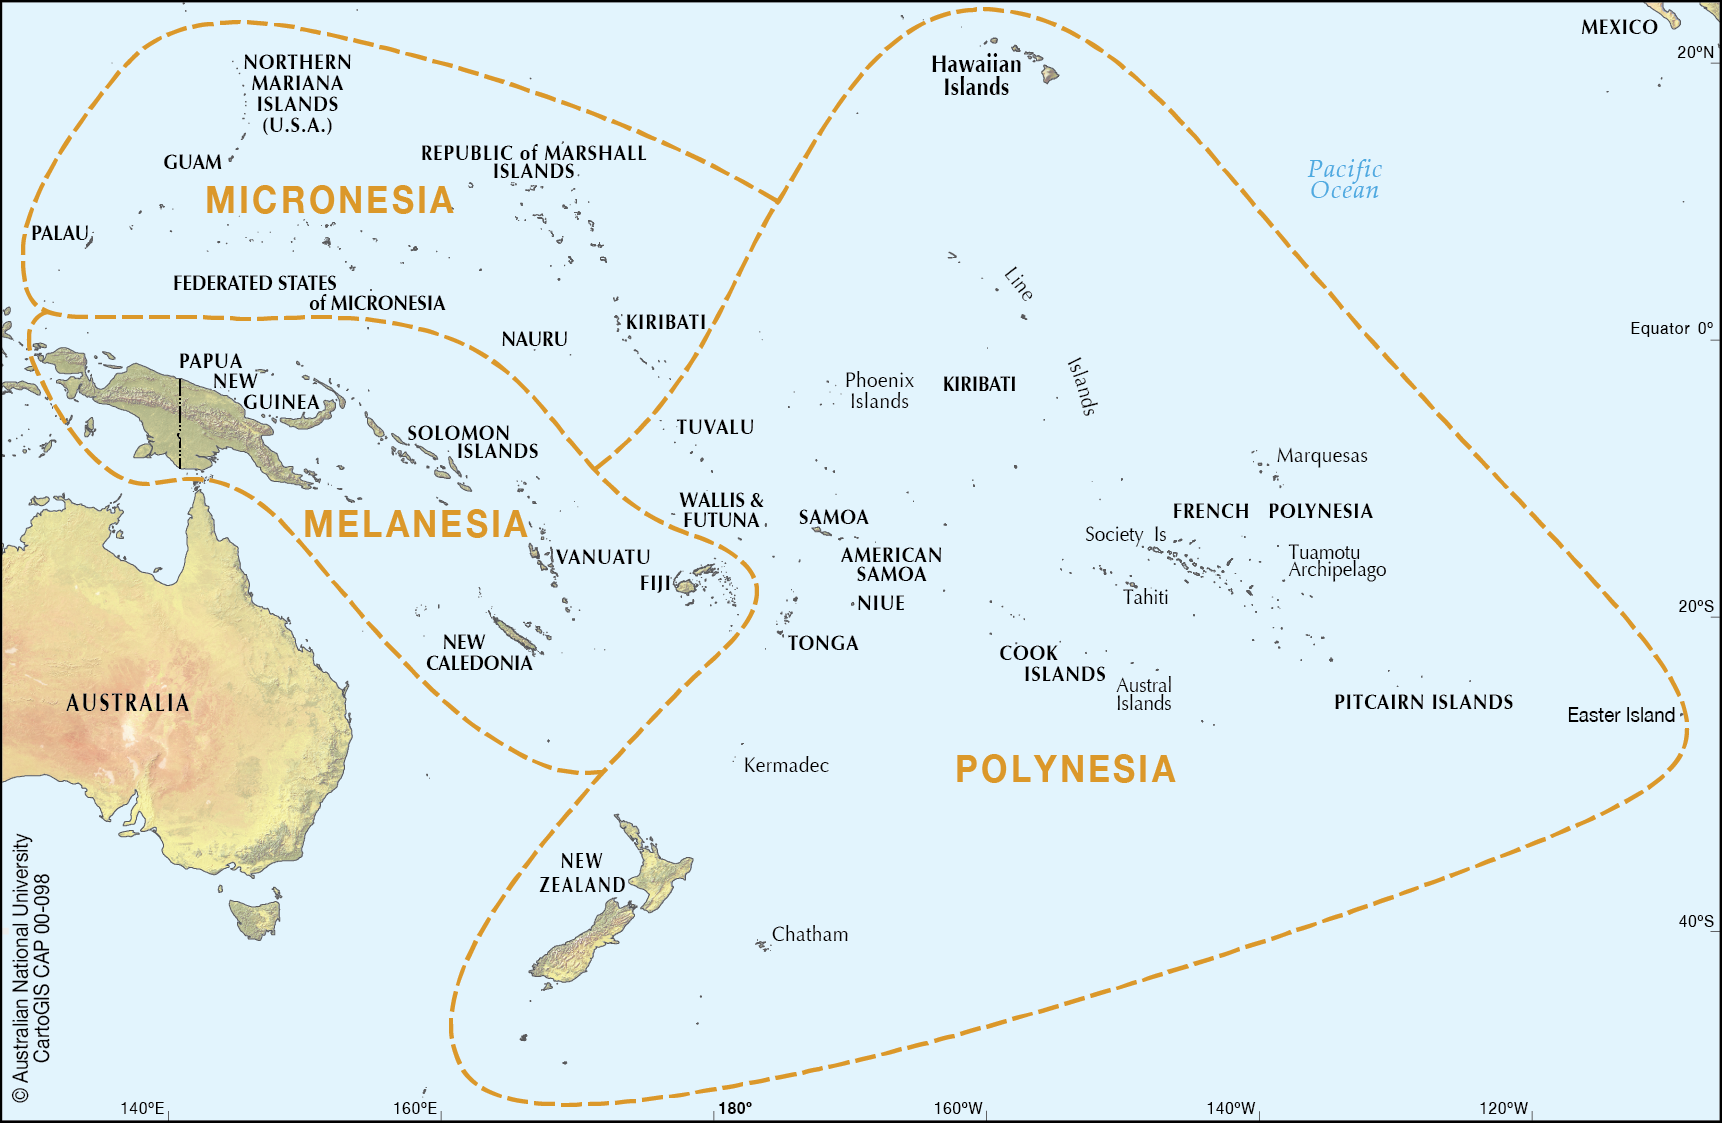 Subregions of Oceania - CartoGIS Services Maps Online - ANU